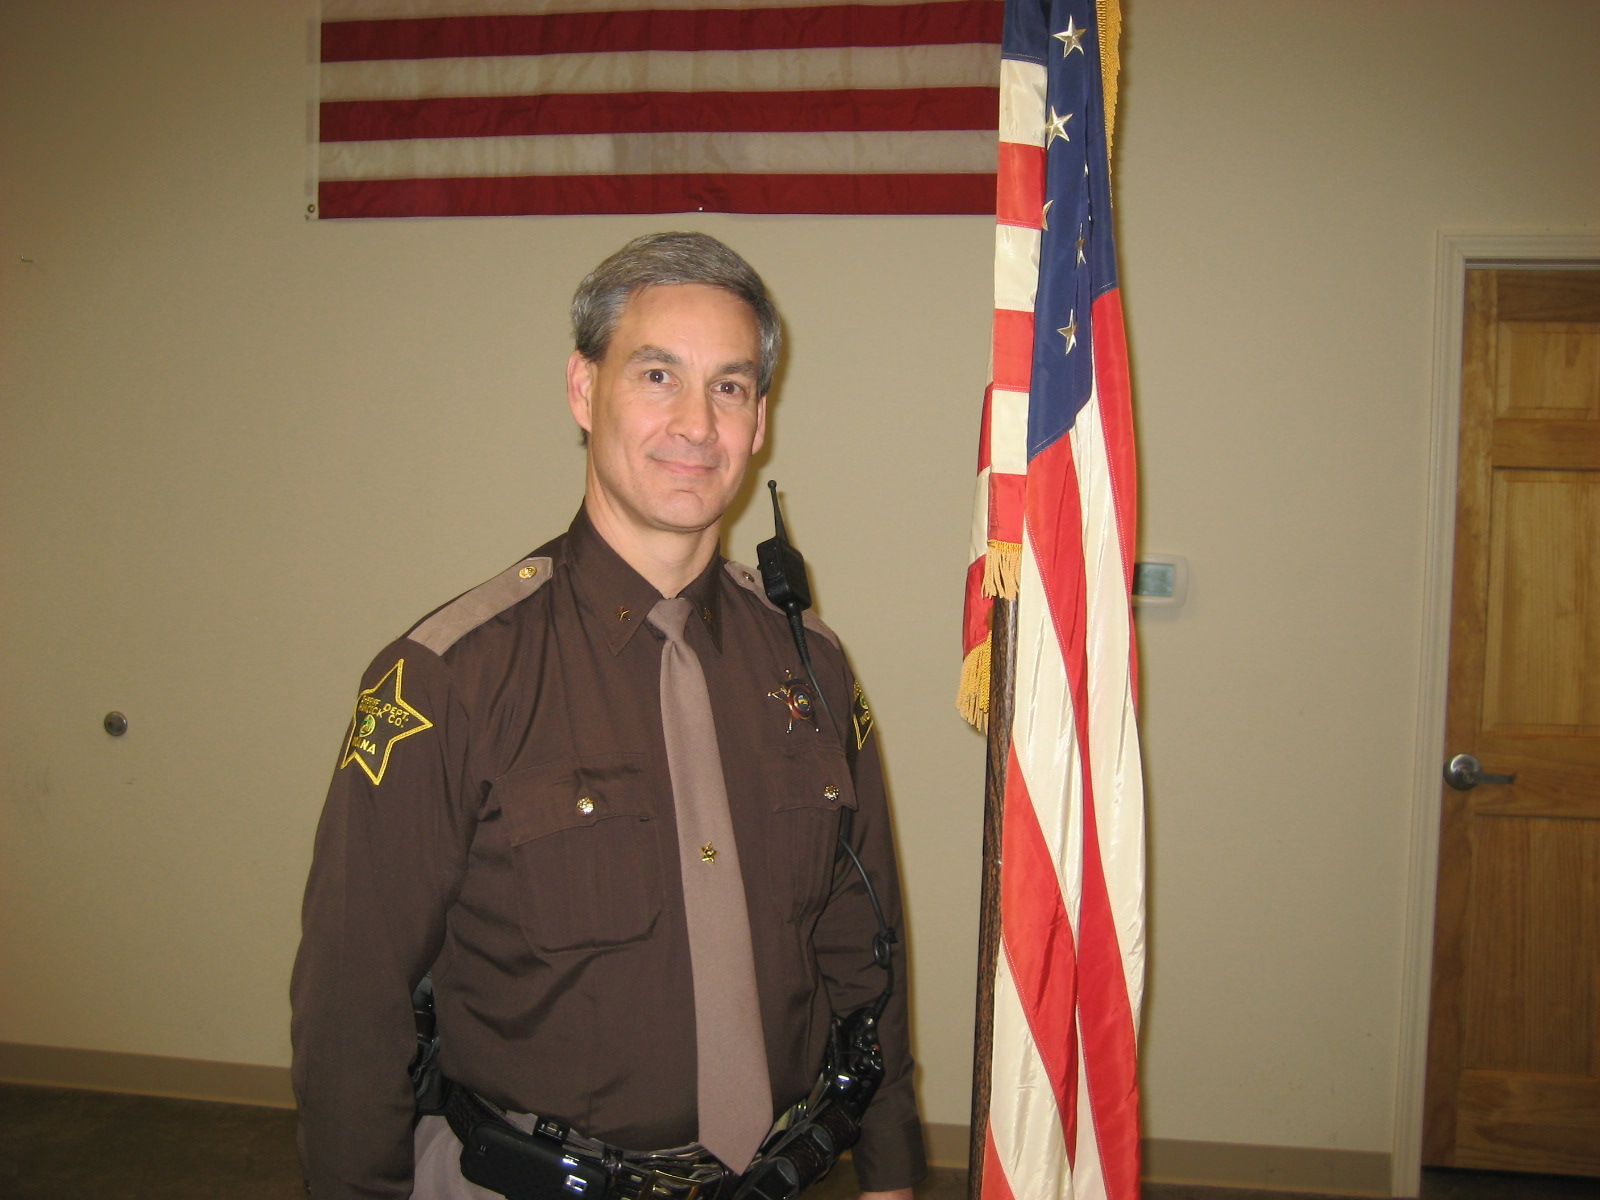 County Sheriffs Deputy Was Arrested Early Sunday Morning After What Images Frompo